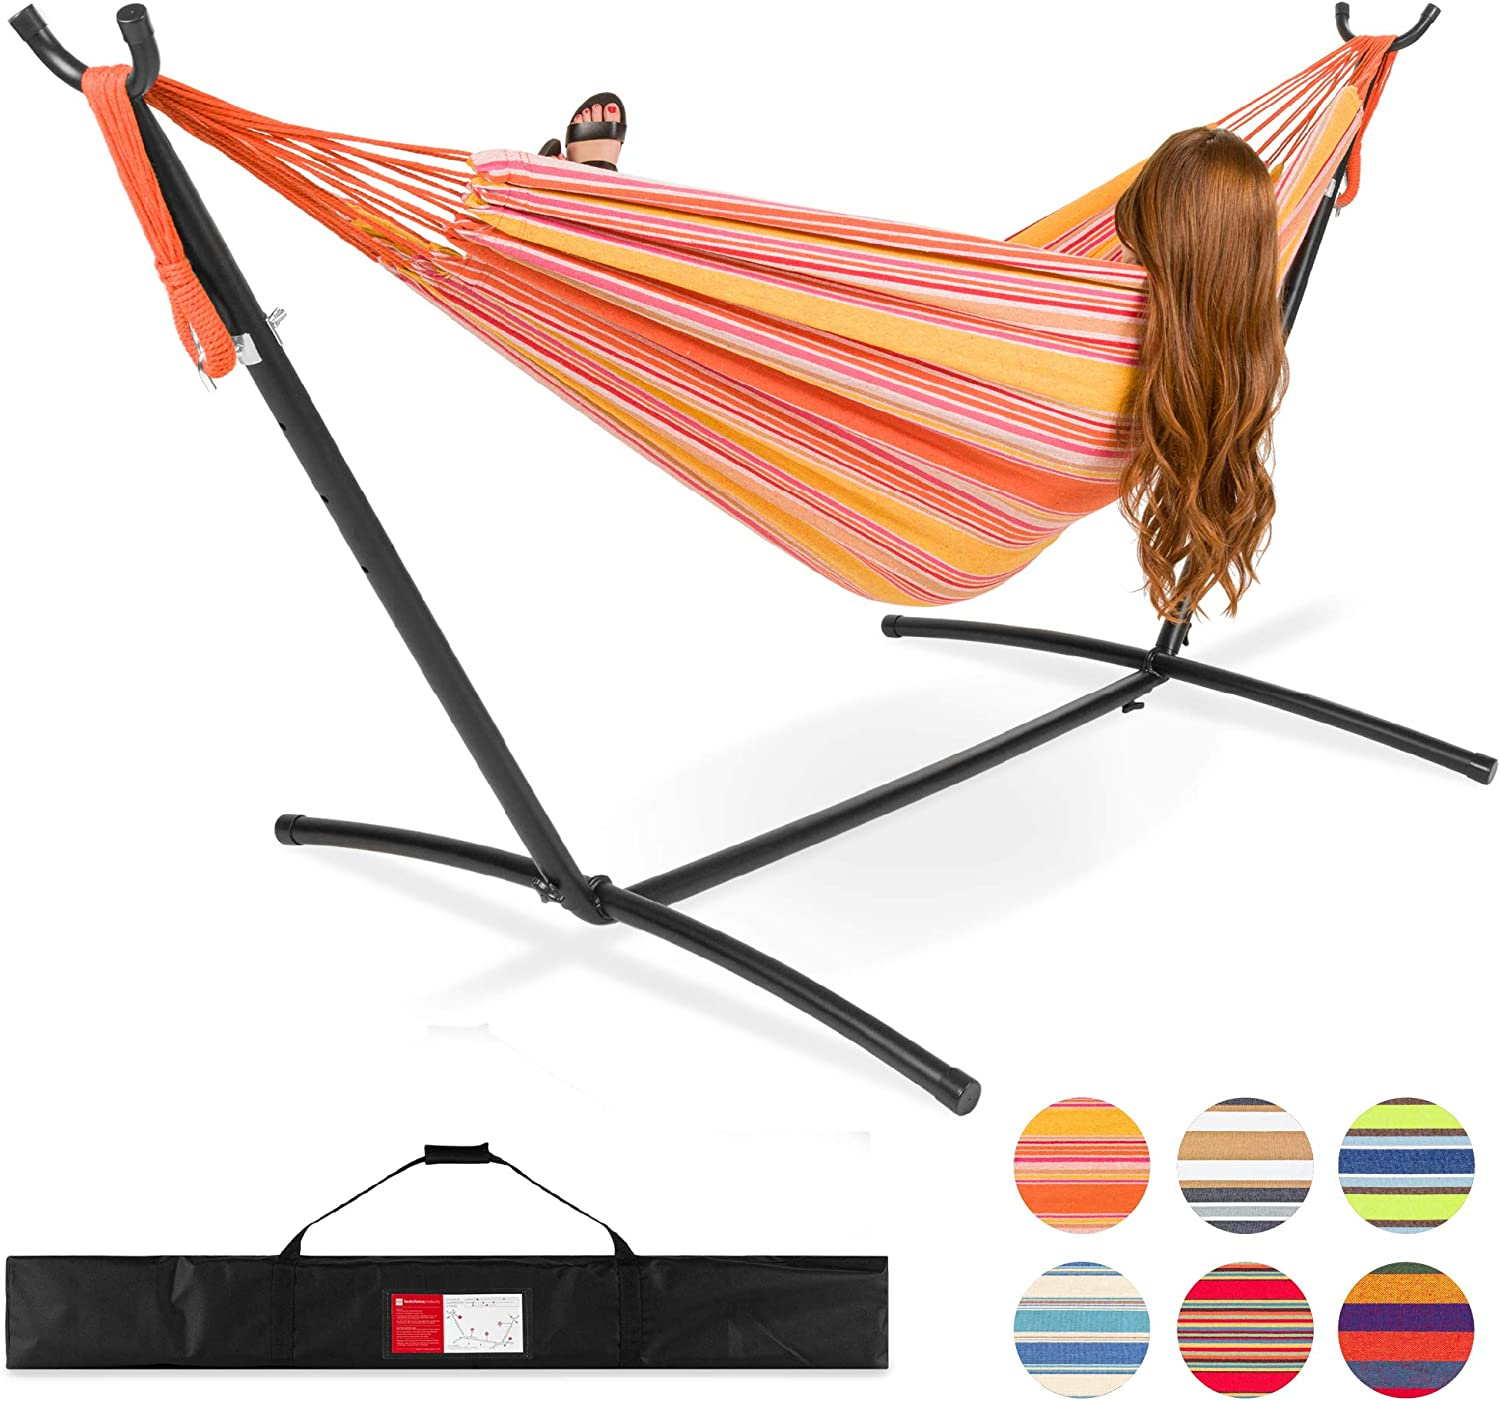 Best Choice Products 2-Person Indoor Outdoor Brazilian-Style Cotton Double Hammock Bed w/Carrying Bag, Steel Stand, Sunset